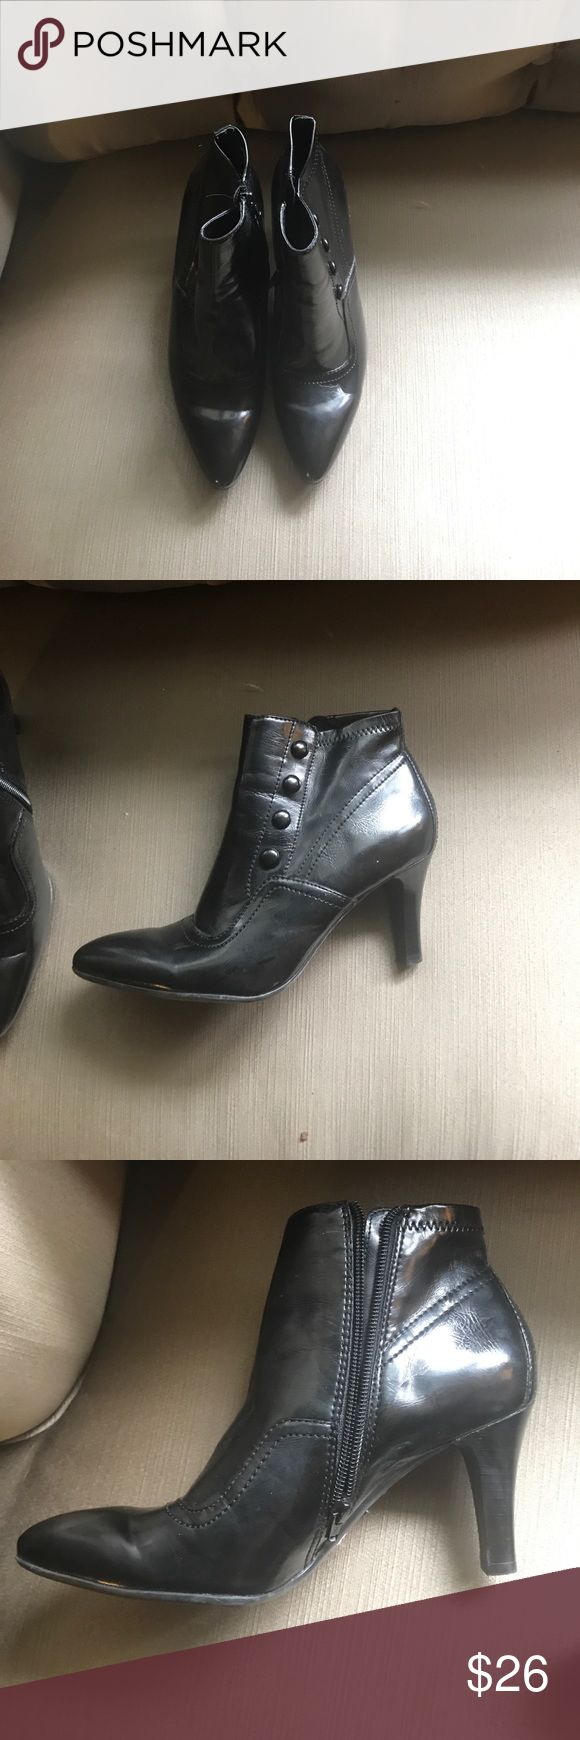 SALE!! Only worn once!  Franco Sarto Boots 9M I'm not sure I've ever worn these, so it's time to find them a good home. Franco Sarto zip up ankle boots, size 9 Franco Sarto Shoes Ankle Boots & Booties